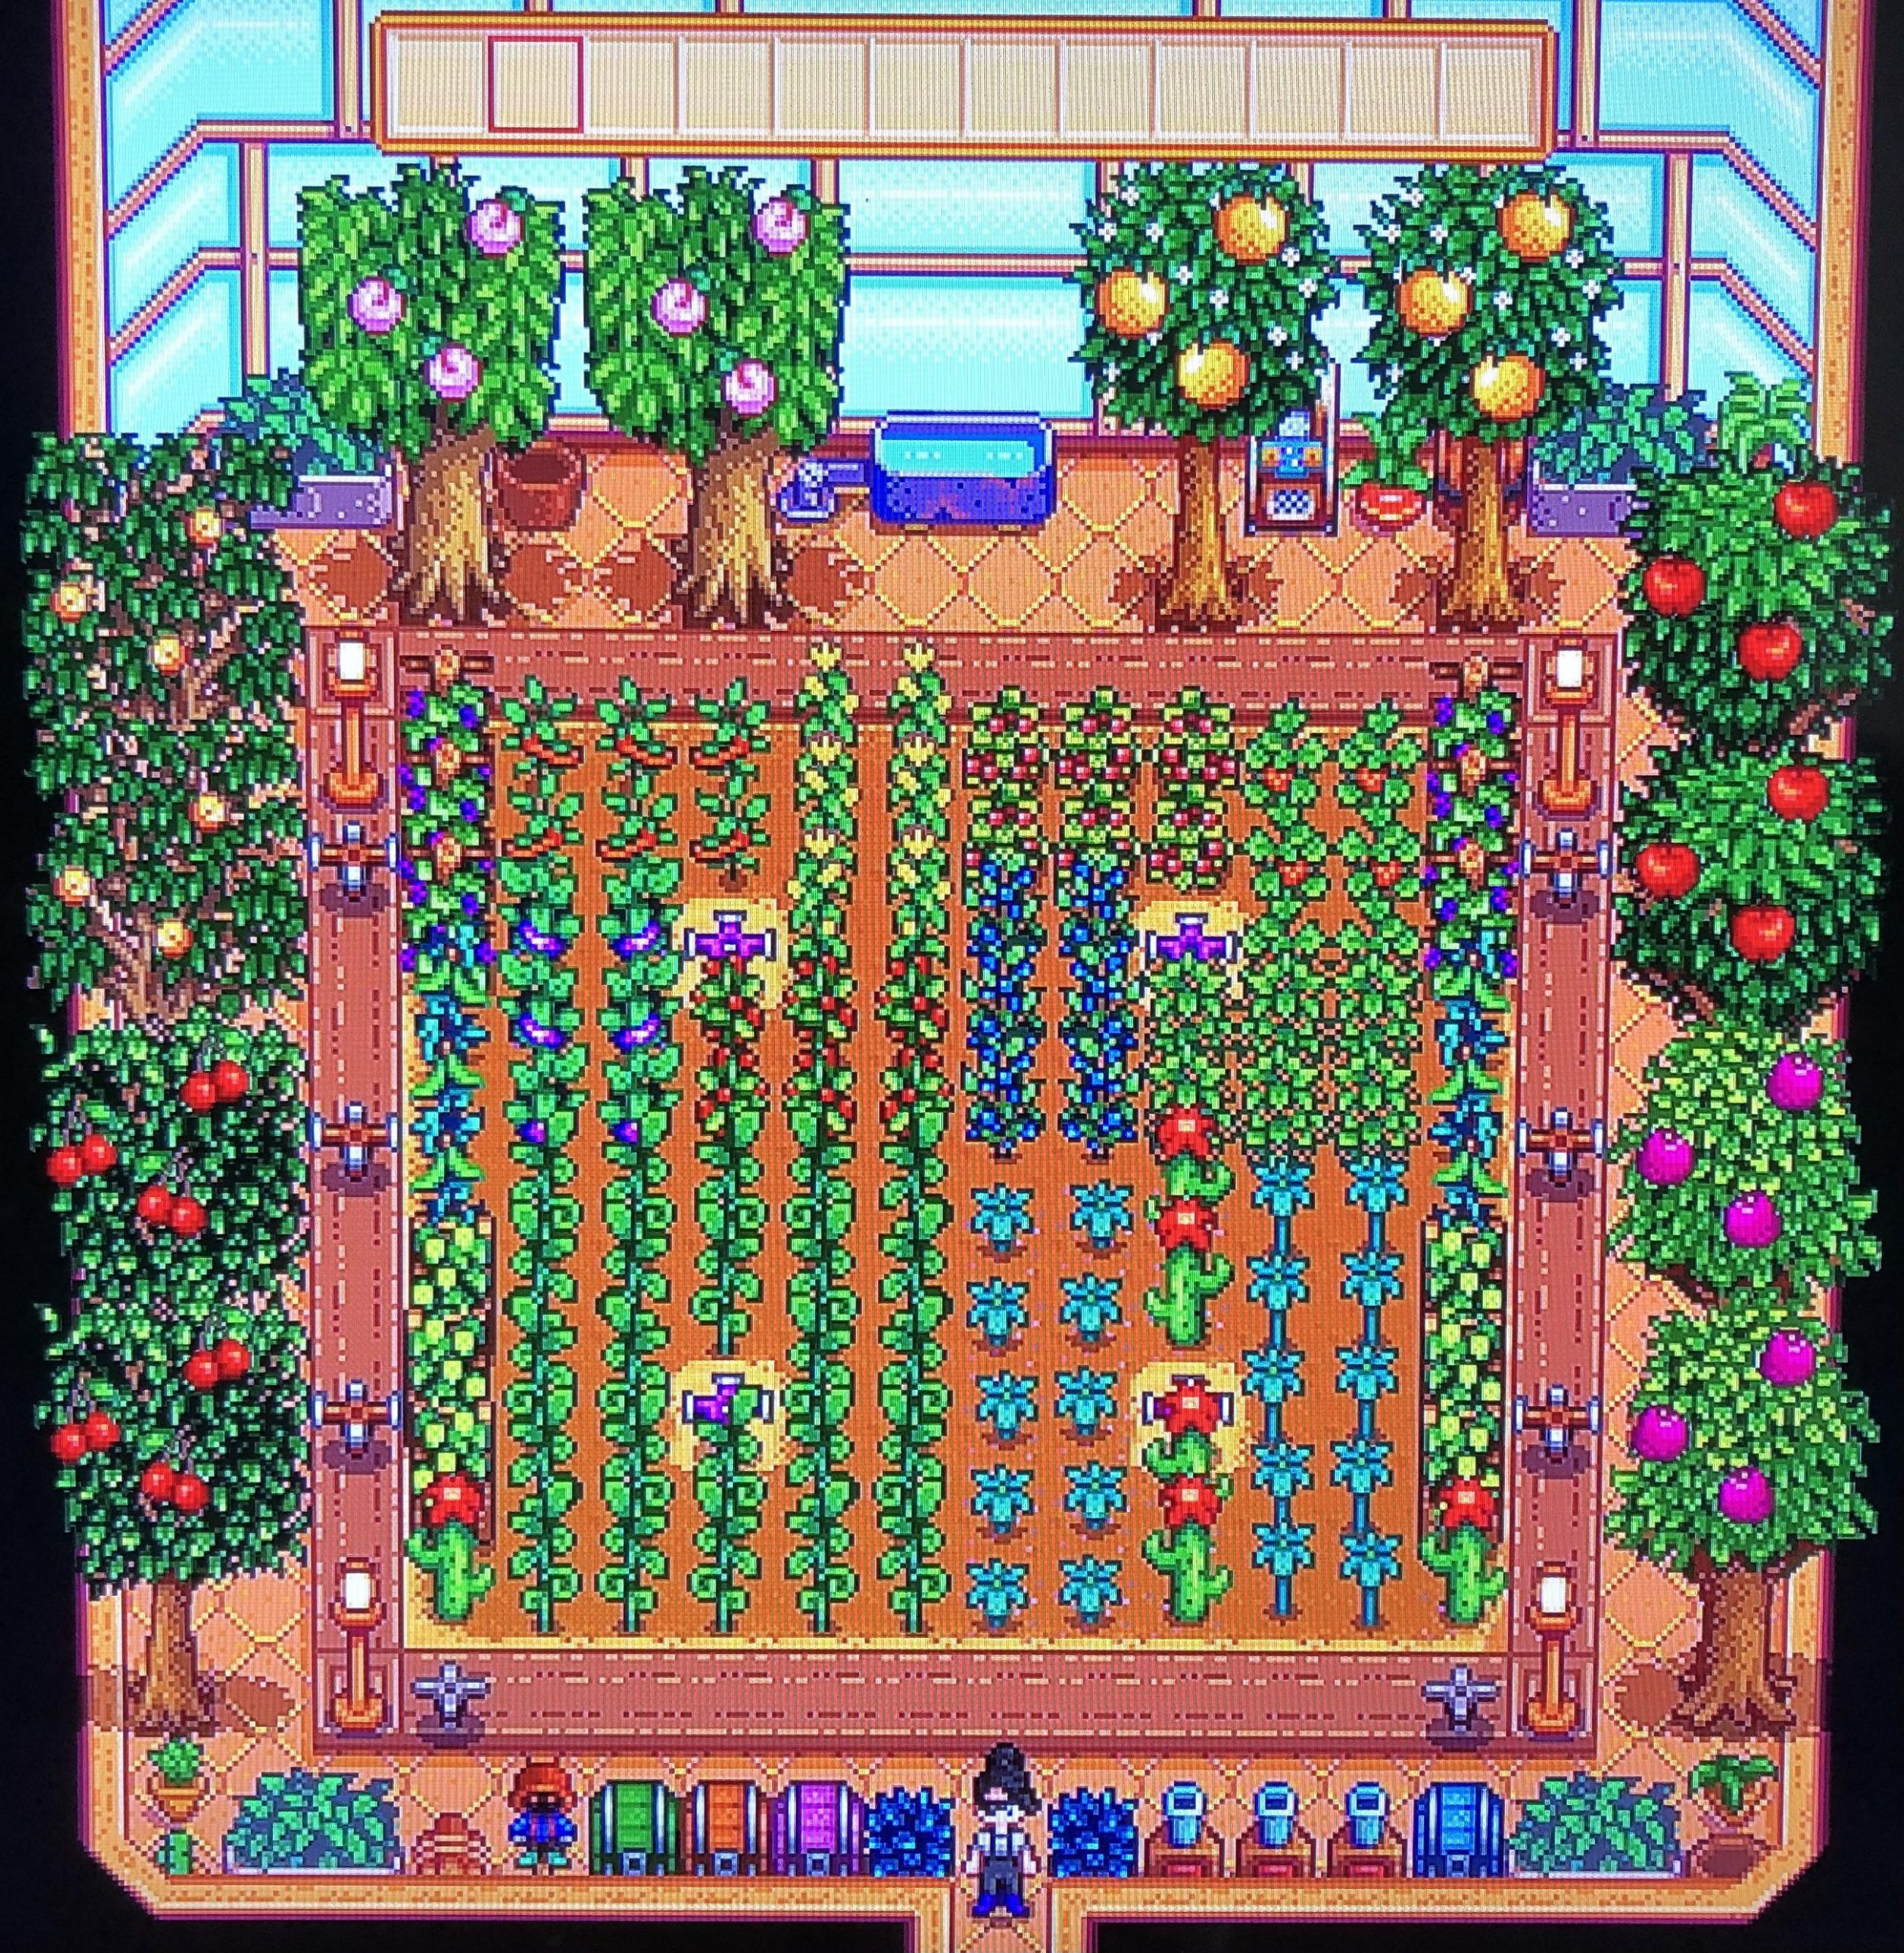 Stardew Valley Fruit Trees in Greenhouse